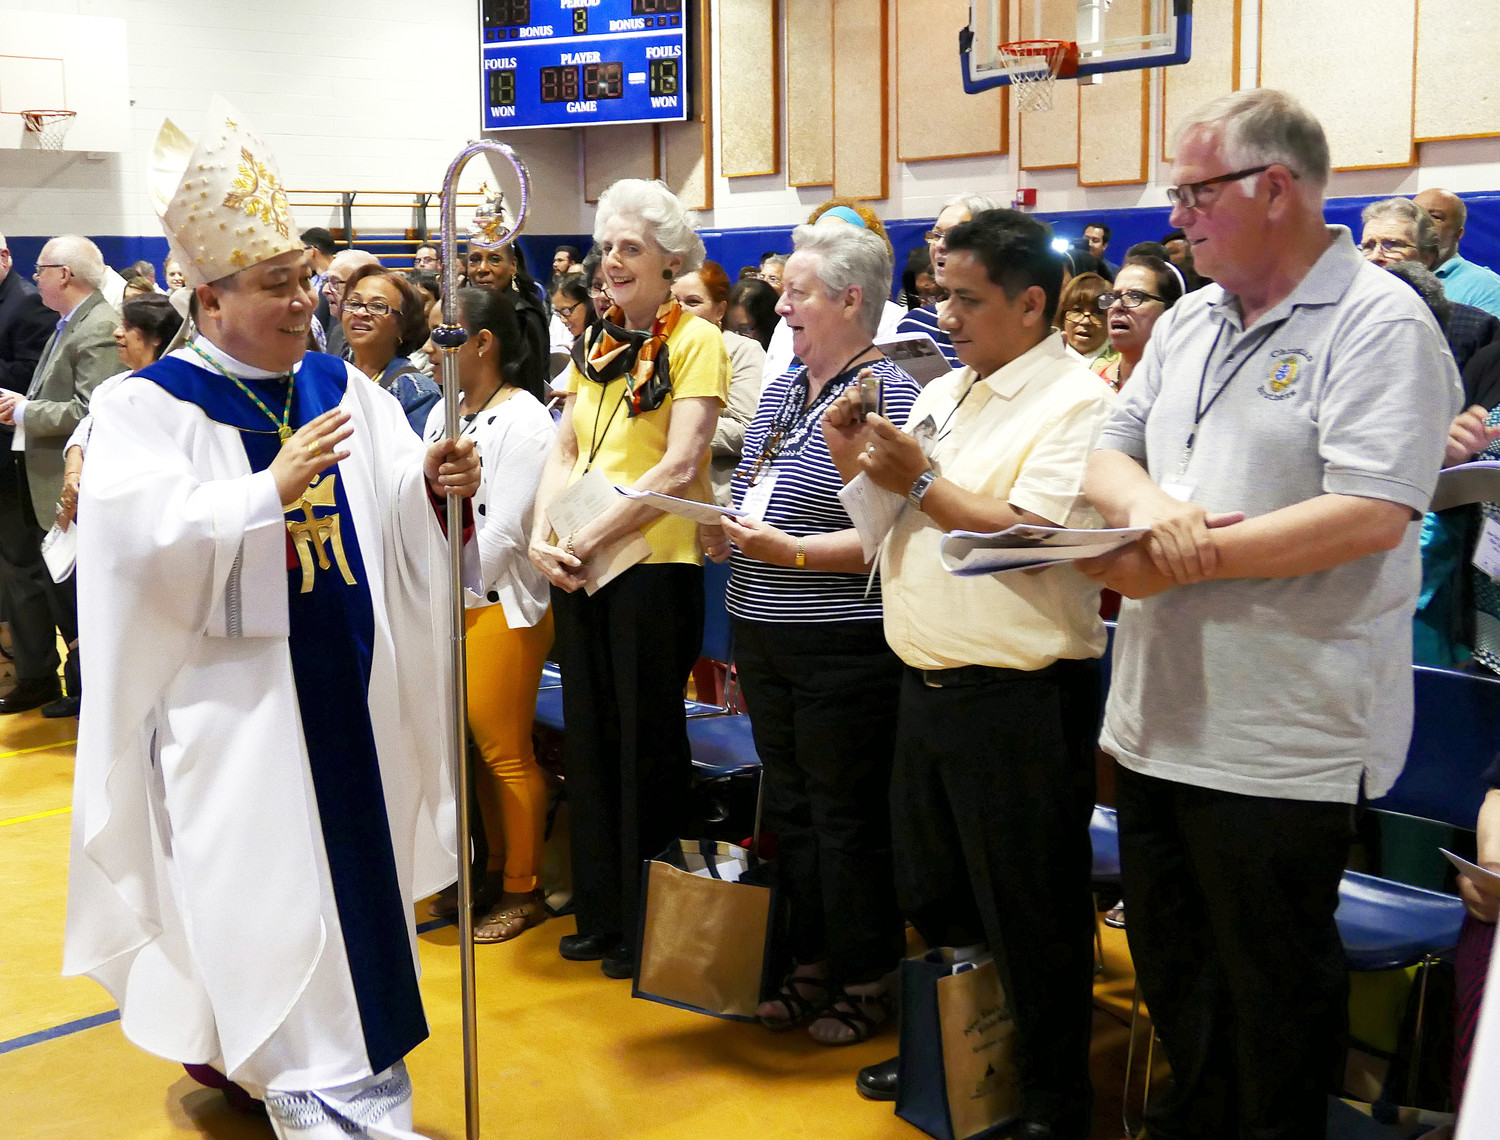 Archbishop Bernardito Auza, apostolic nuncio and permanent observer of the Holy See to the United Nations, far left, greets New York Catholic Bible Summit-goers June 16 at Cathedral High School in Manhattan.